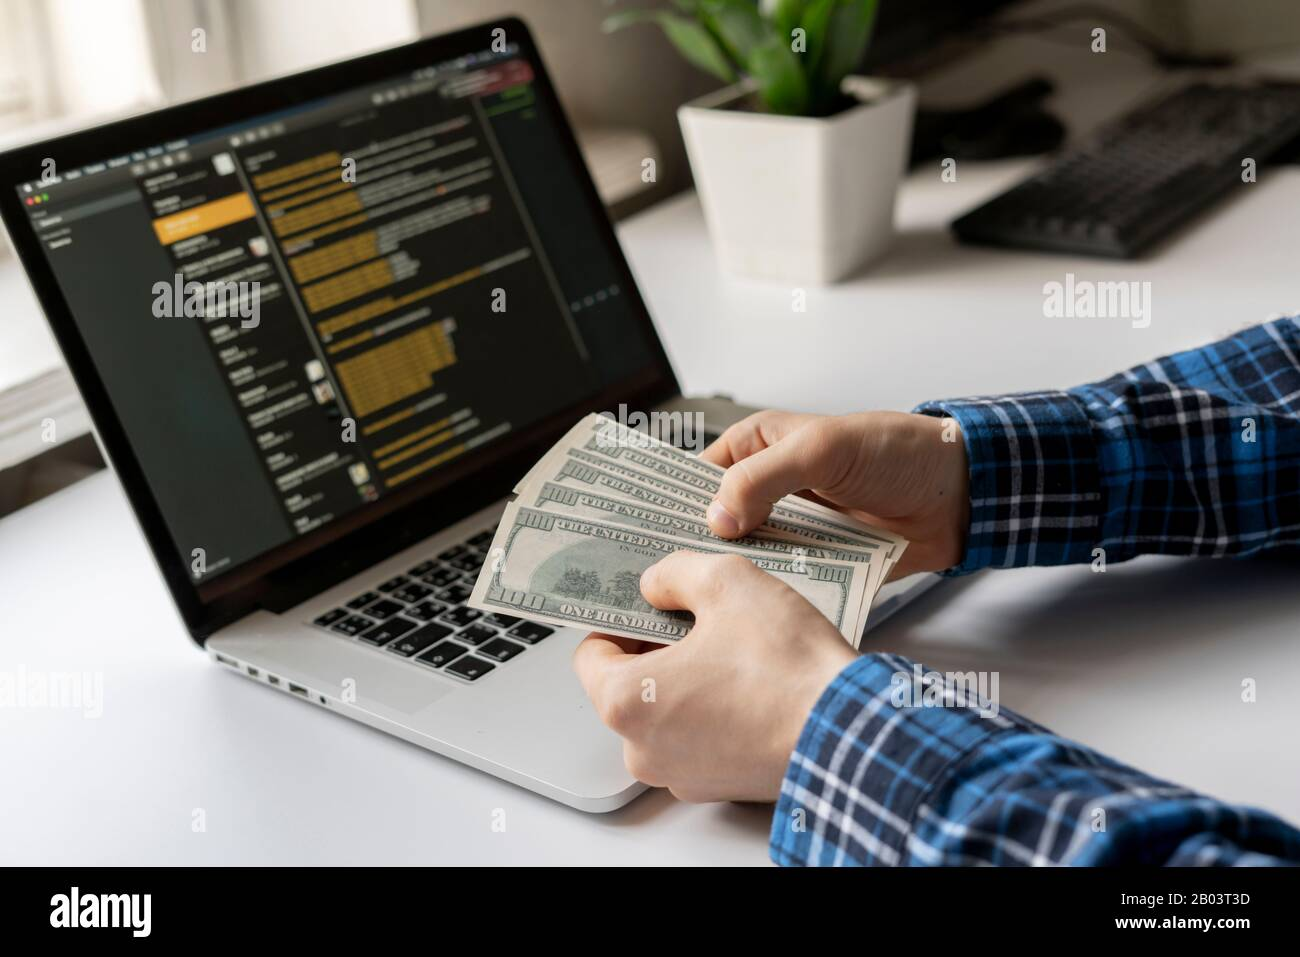 Earn Money Using Computer High Resolution Stock Photography And Images Alamy